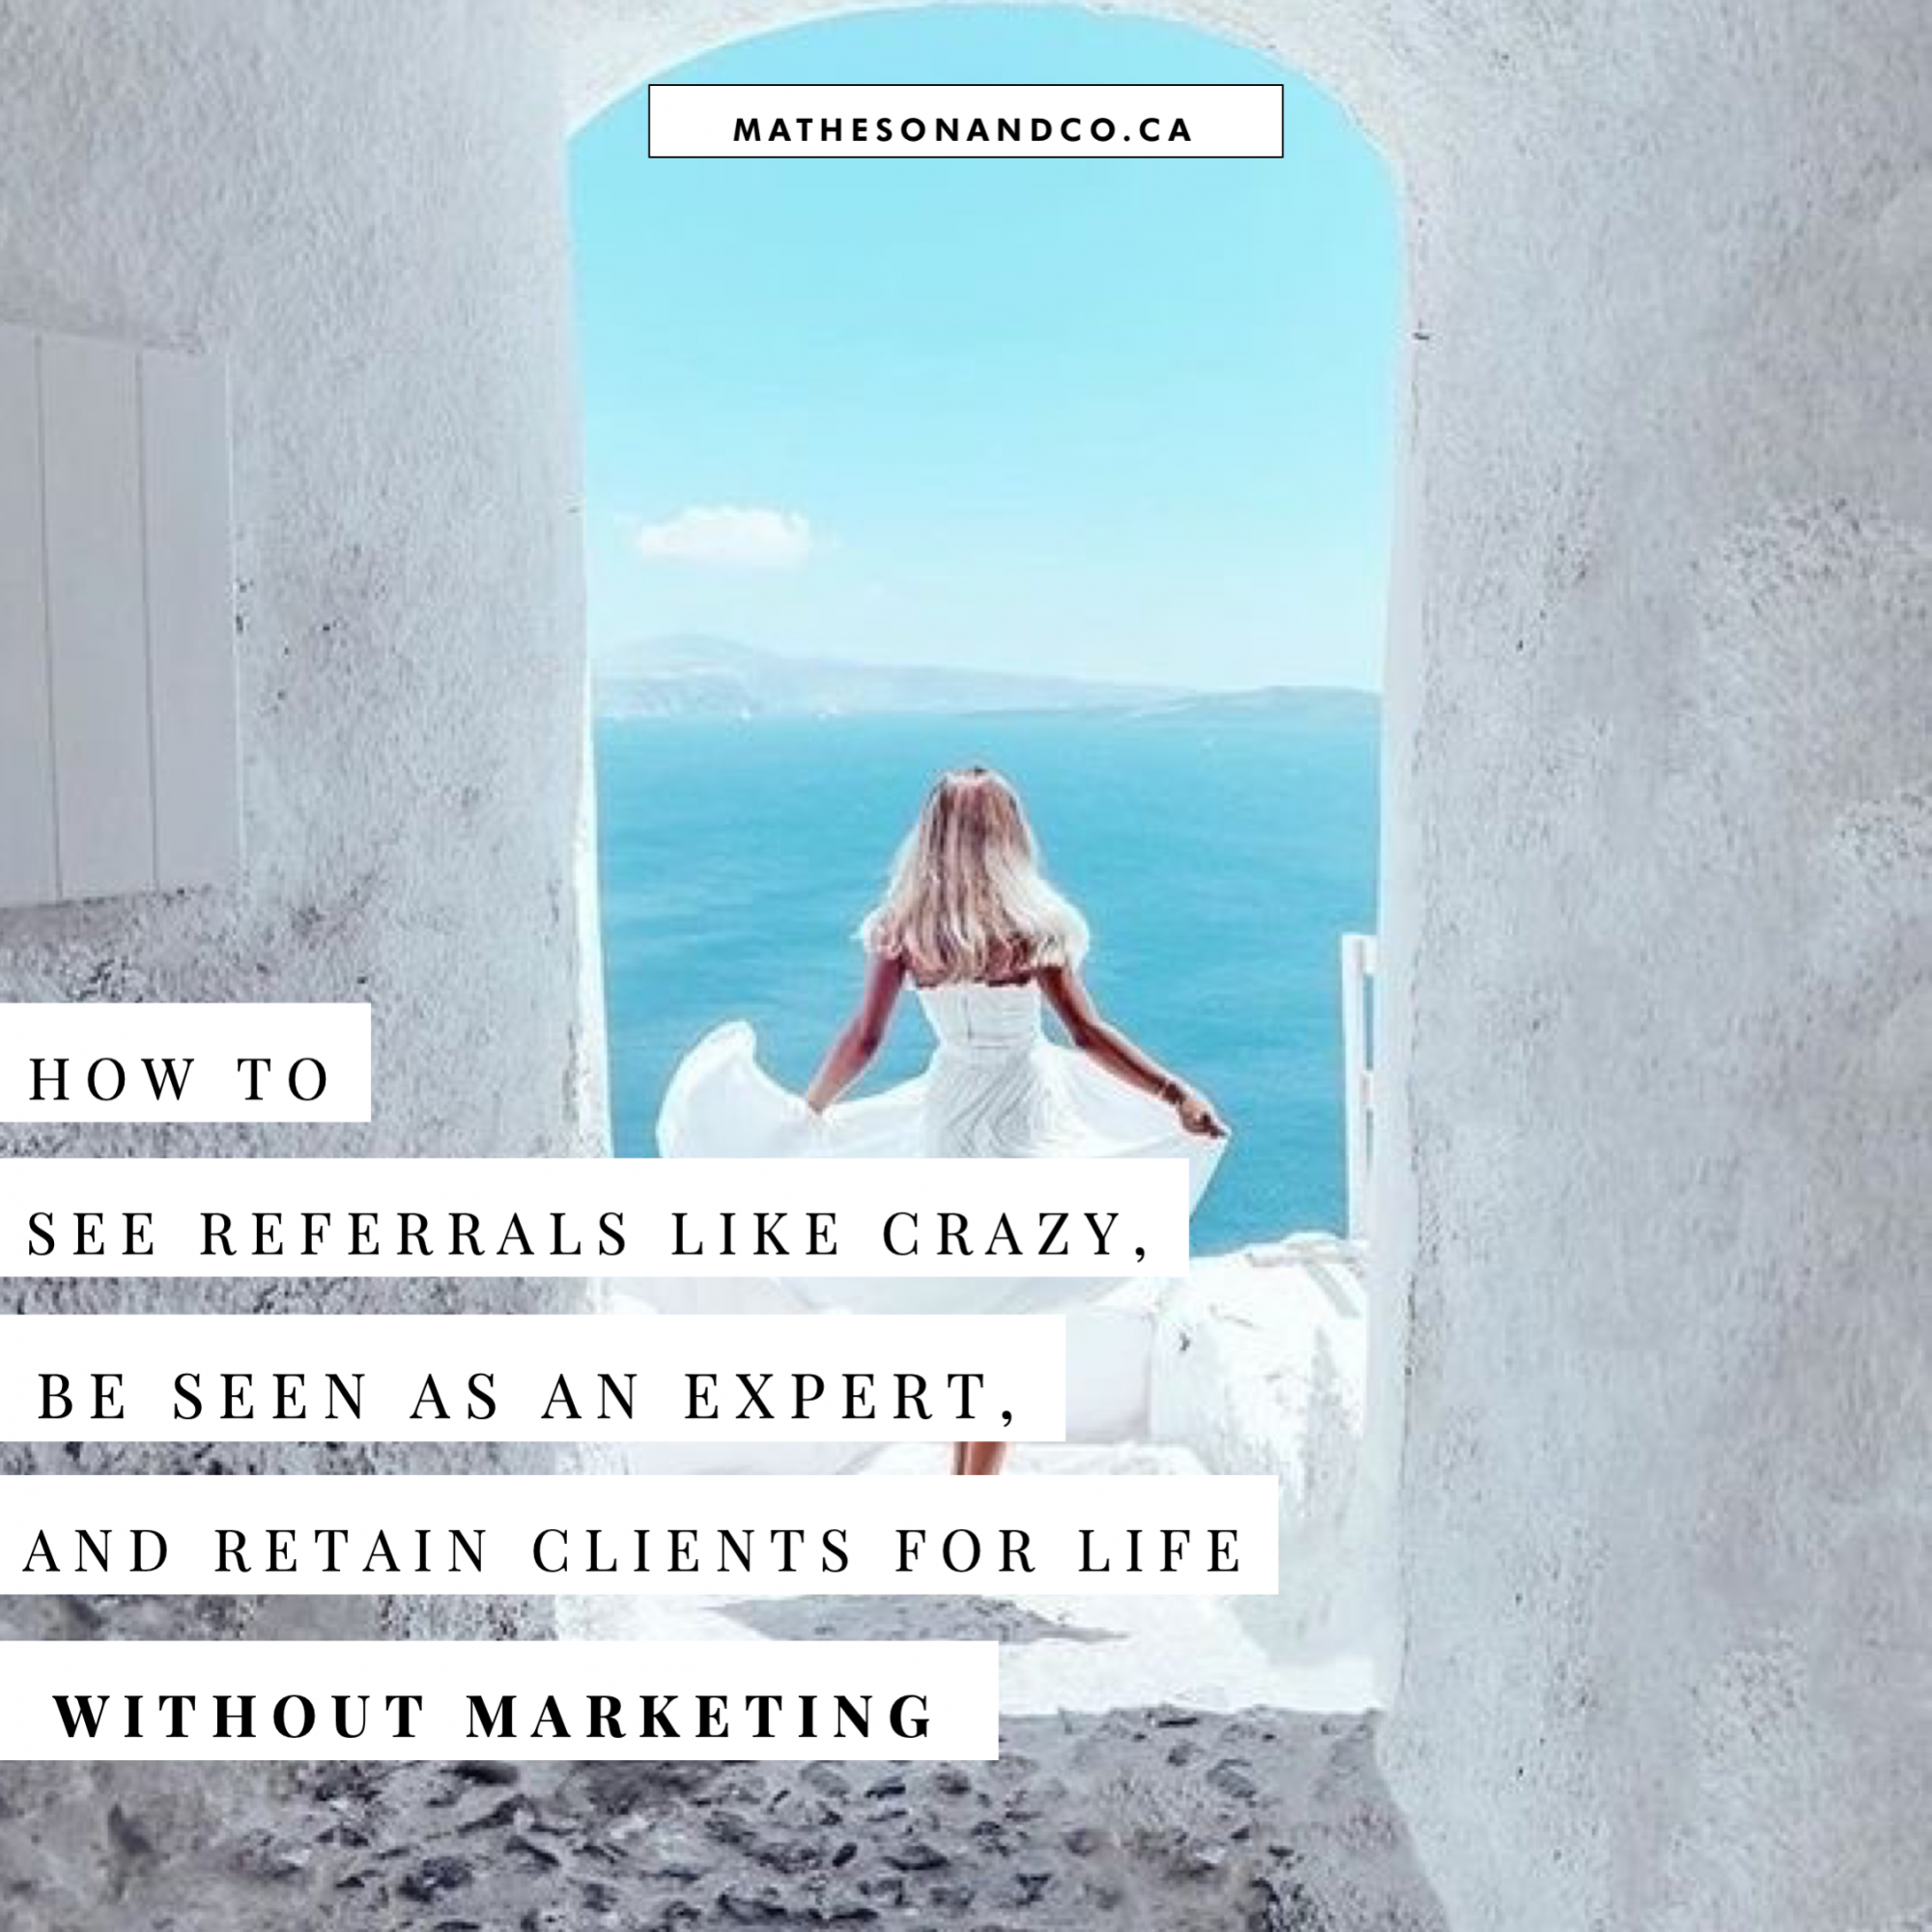 how to get referrals like crazy, be seen as an expert + retain people for life without marketing